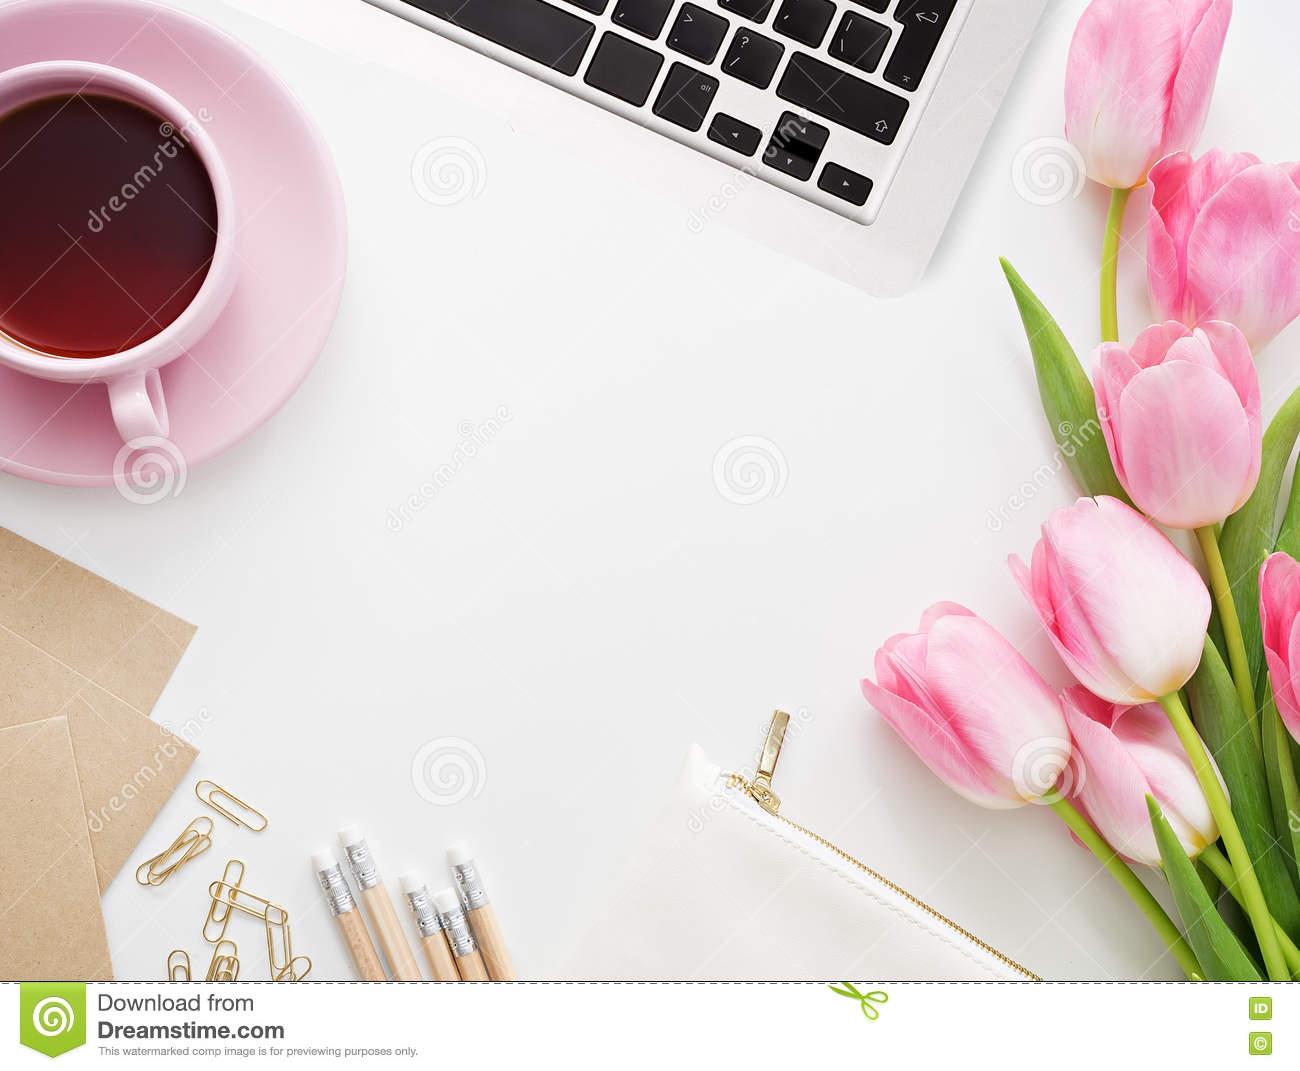 tulips, keyboard and office supplies on white board stock photo